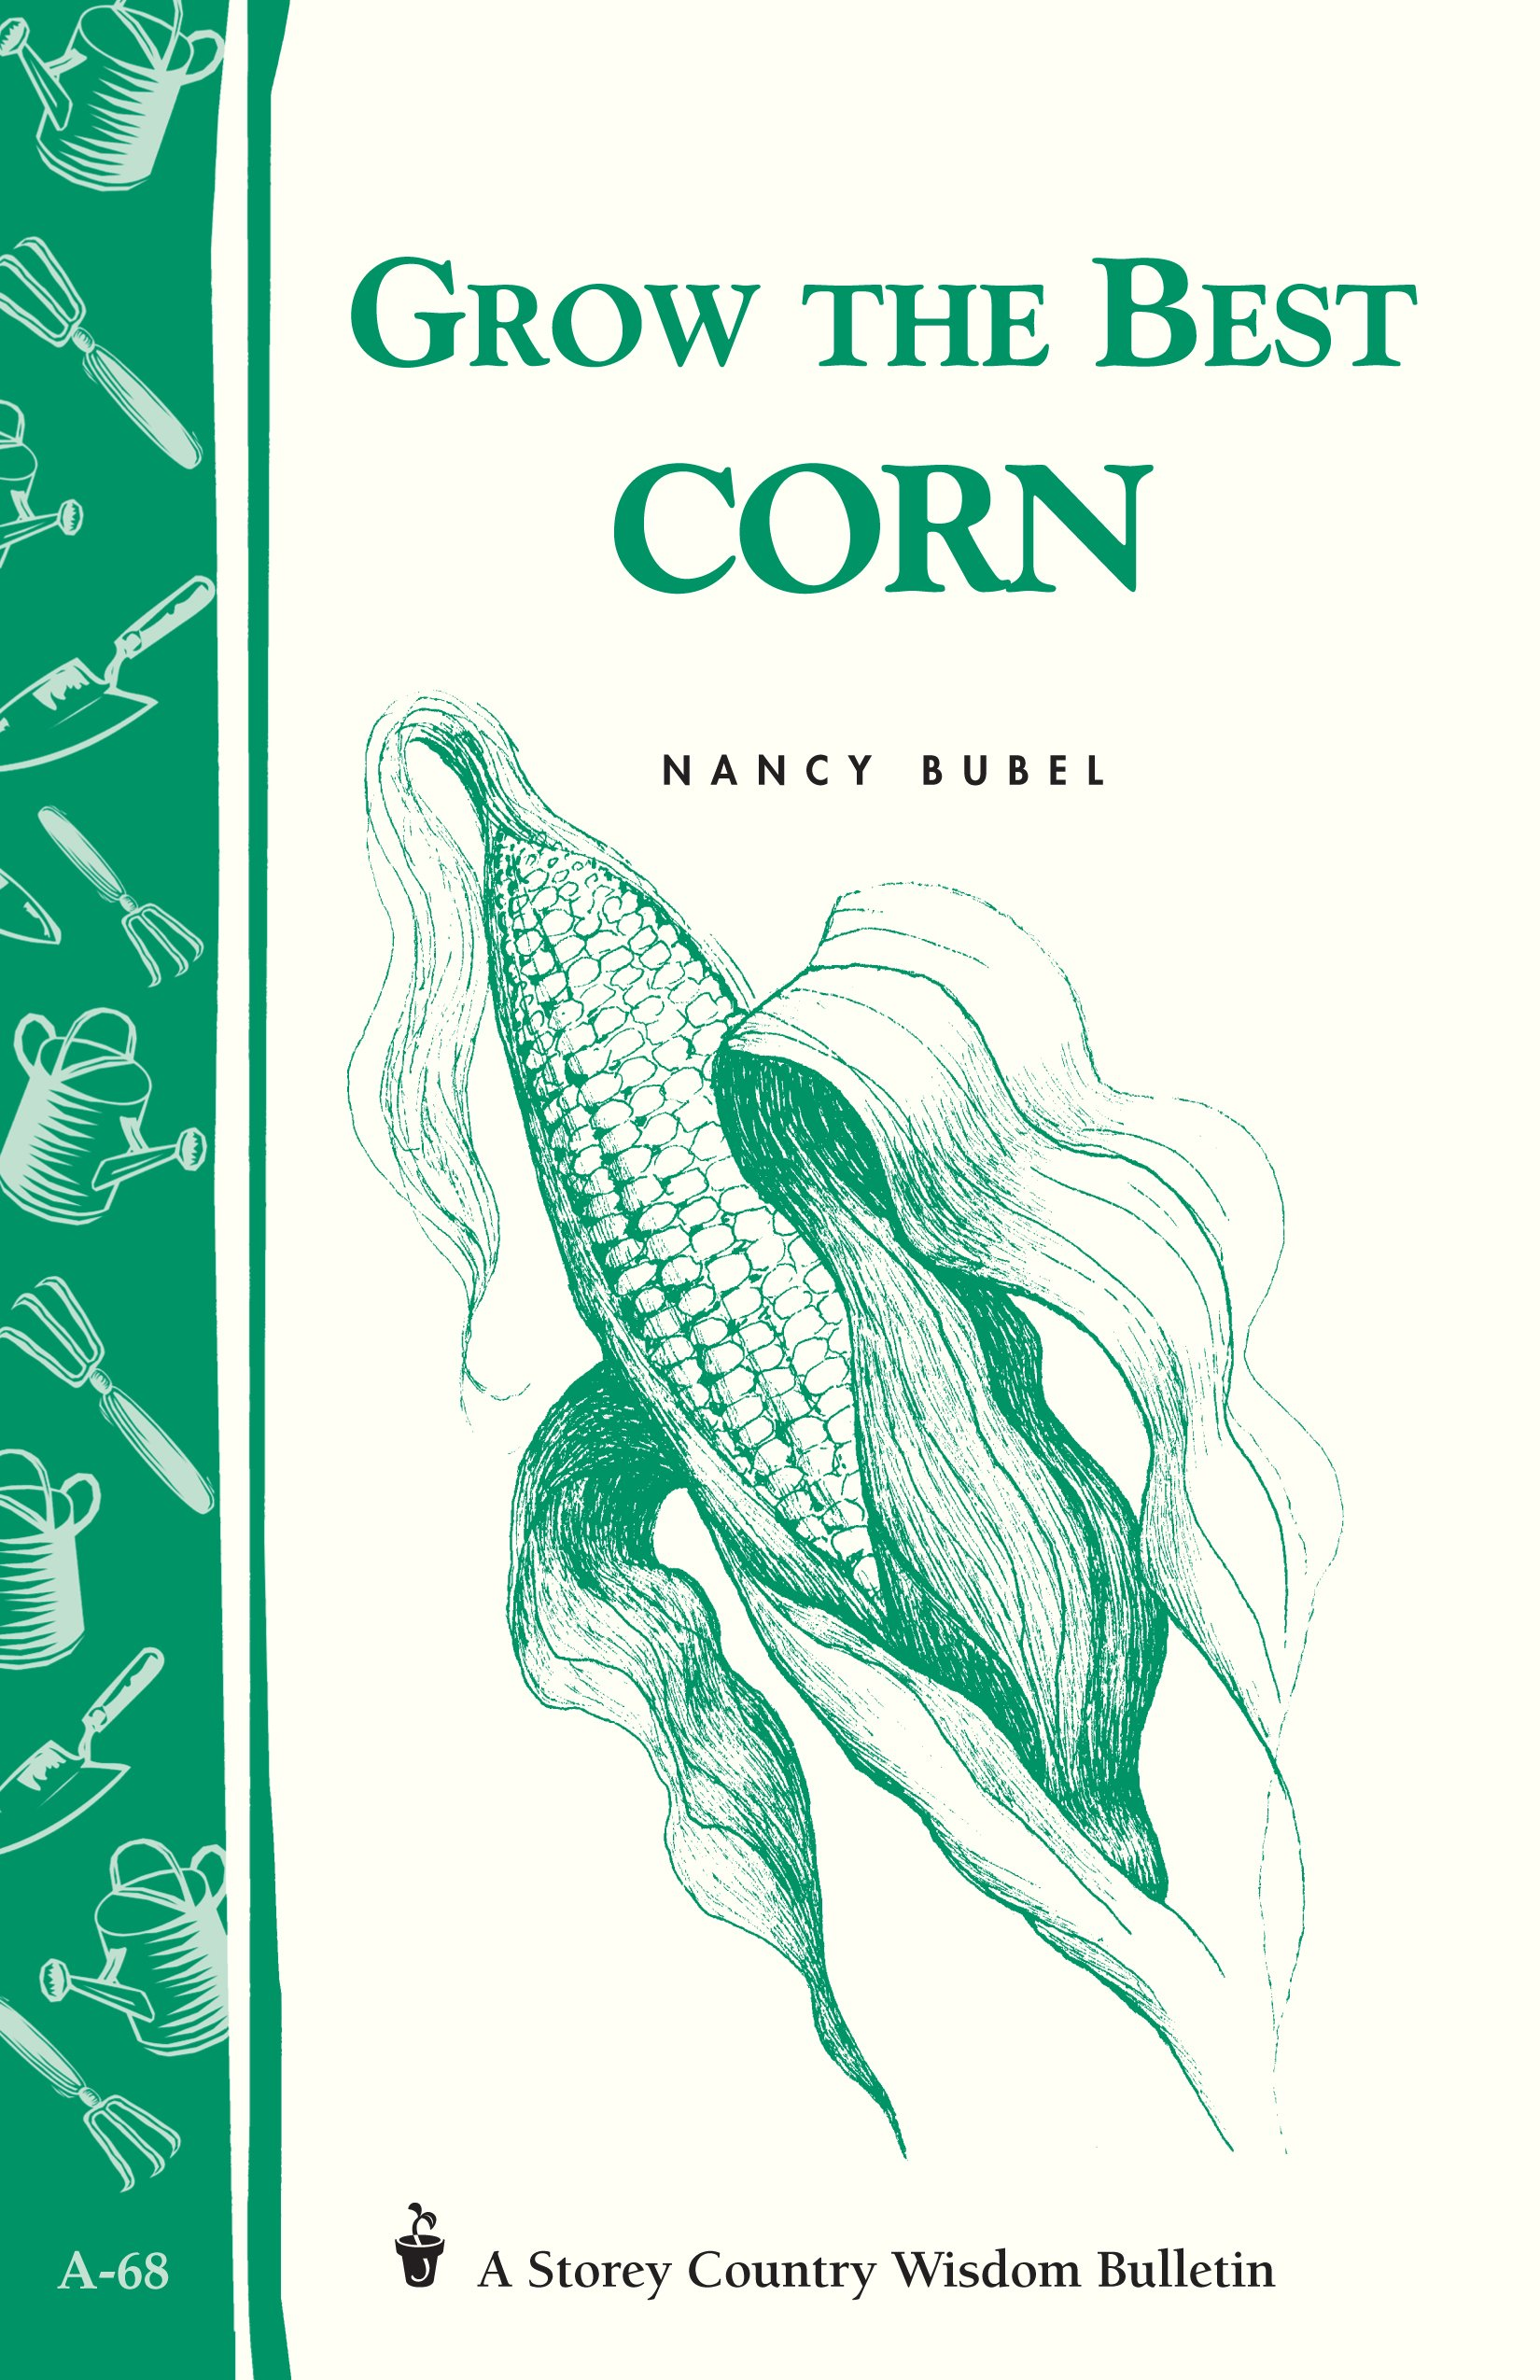 Image OfGrow The Best Corn: Storey's Country Wisdom Bulletin A-68 (Country Wisdom Bulletins Volume A-68) (English Edition)